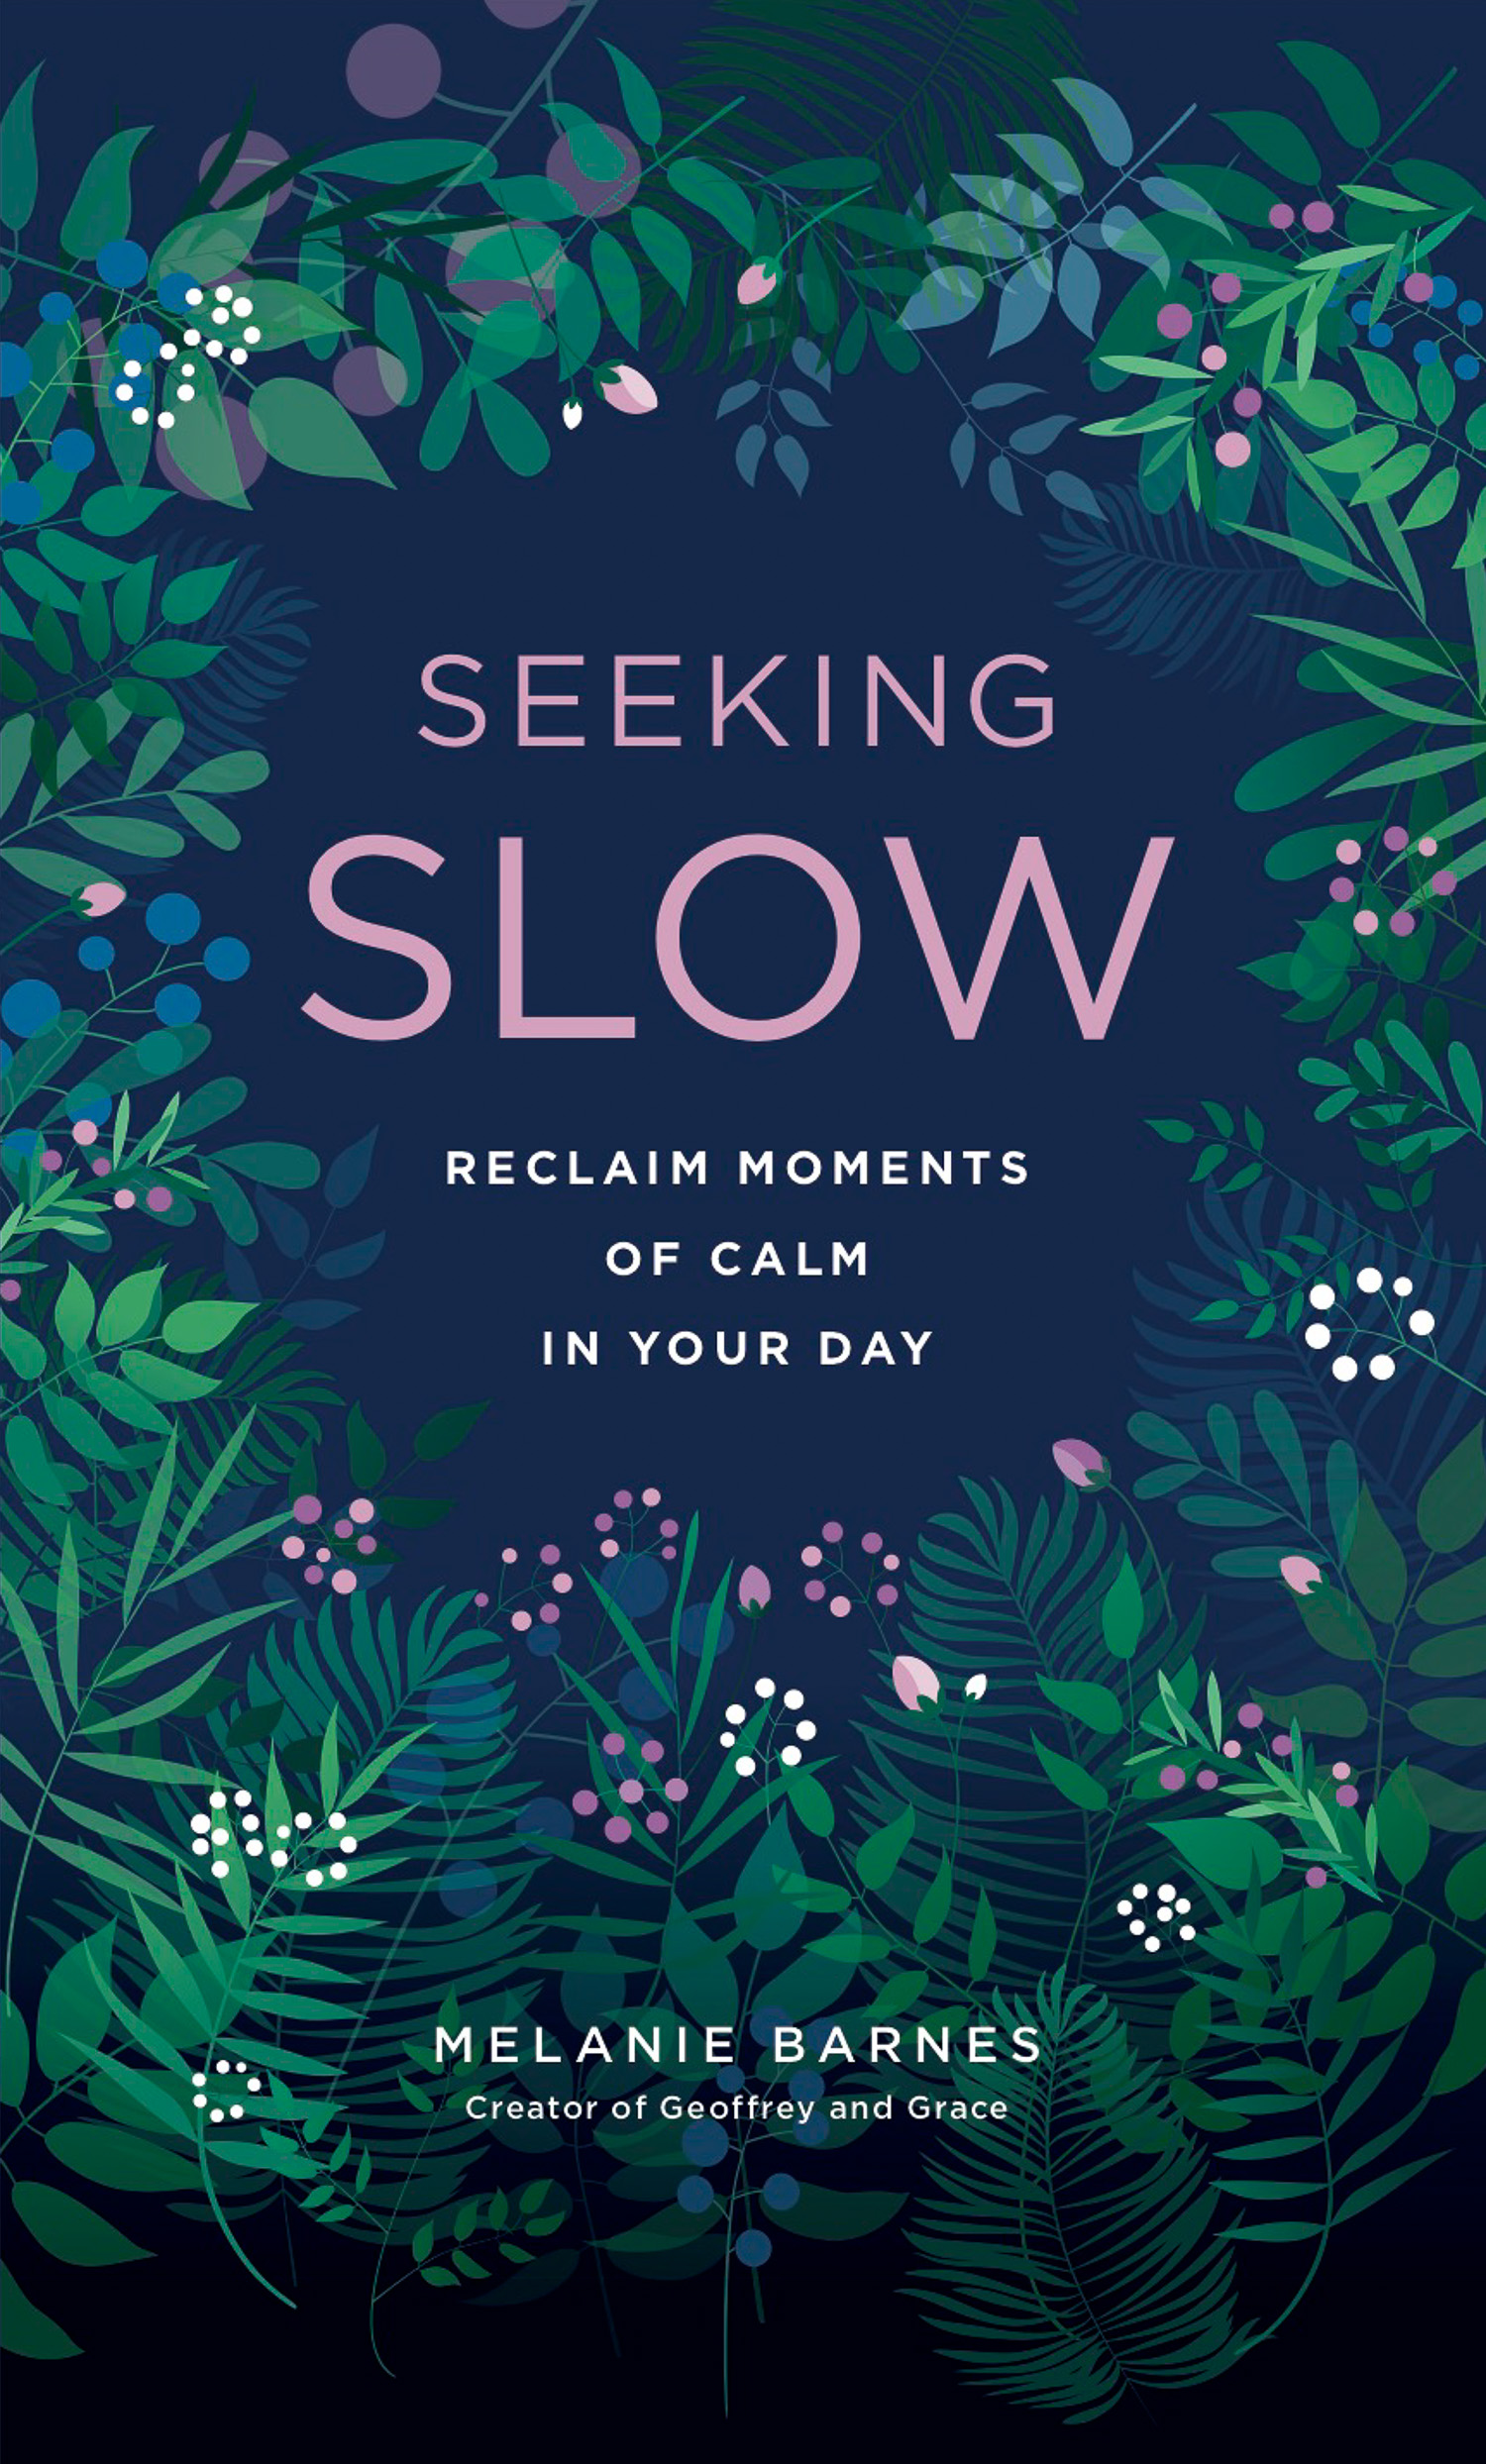 seeking slow - slow living book cover by Melanie Barnes